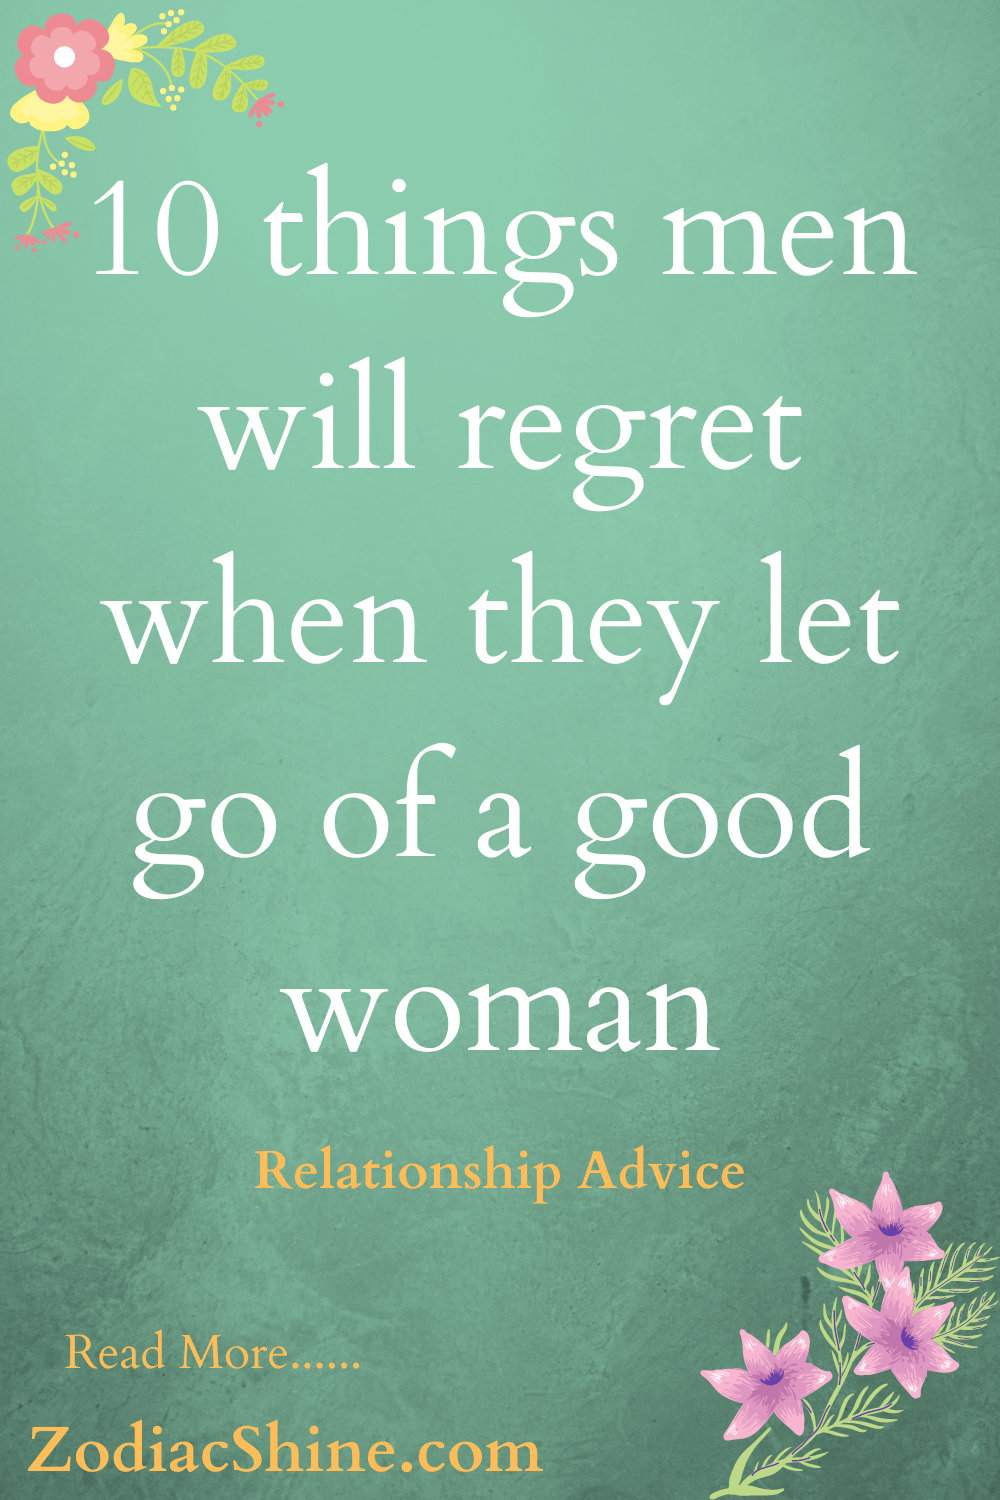 10 things men will regret when they let go of a good woman